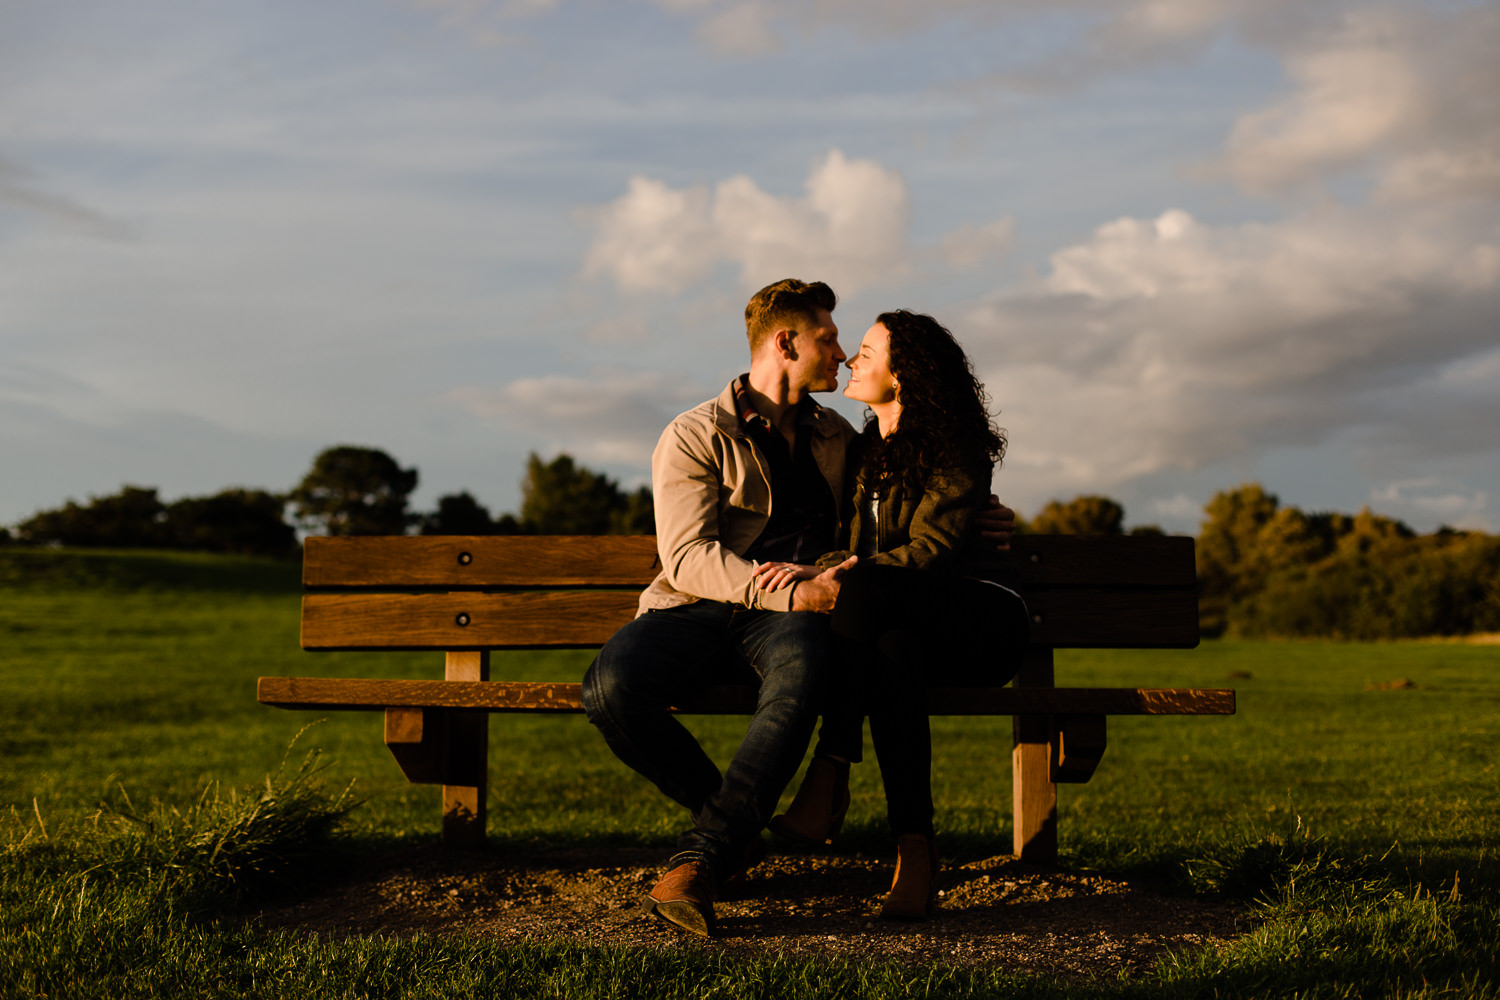 A couple close together on a bench at sunset